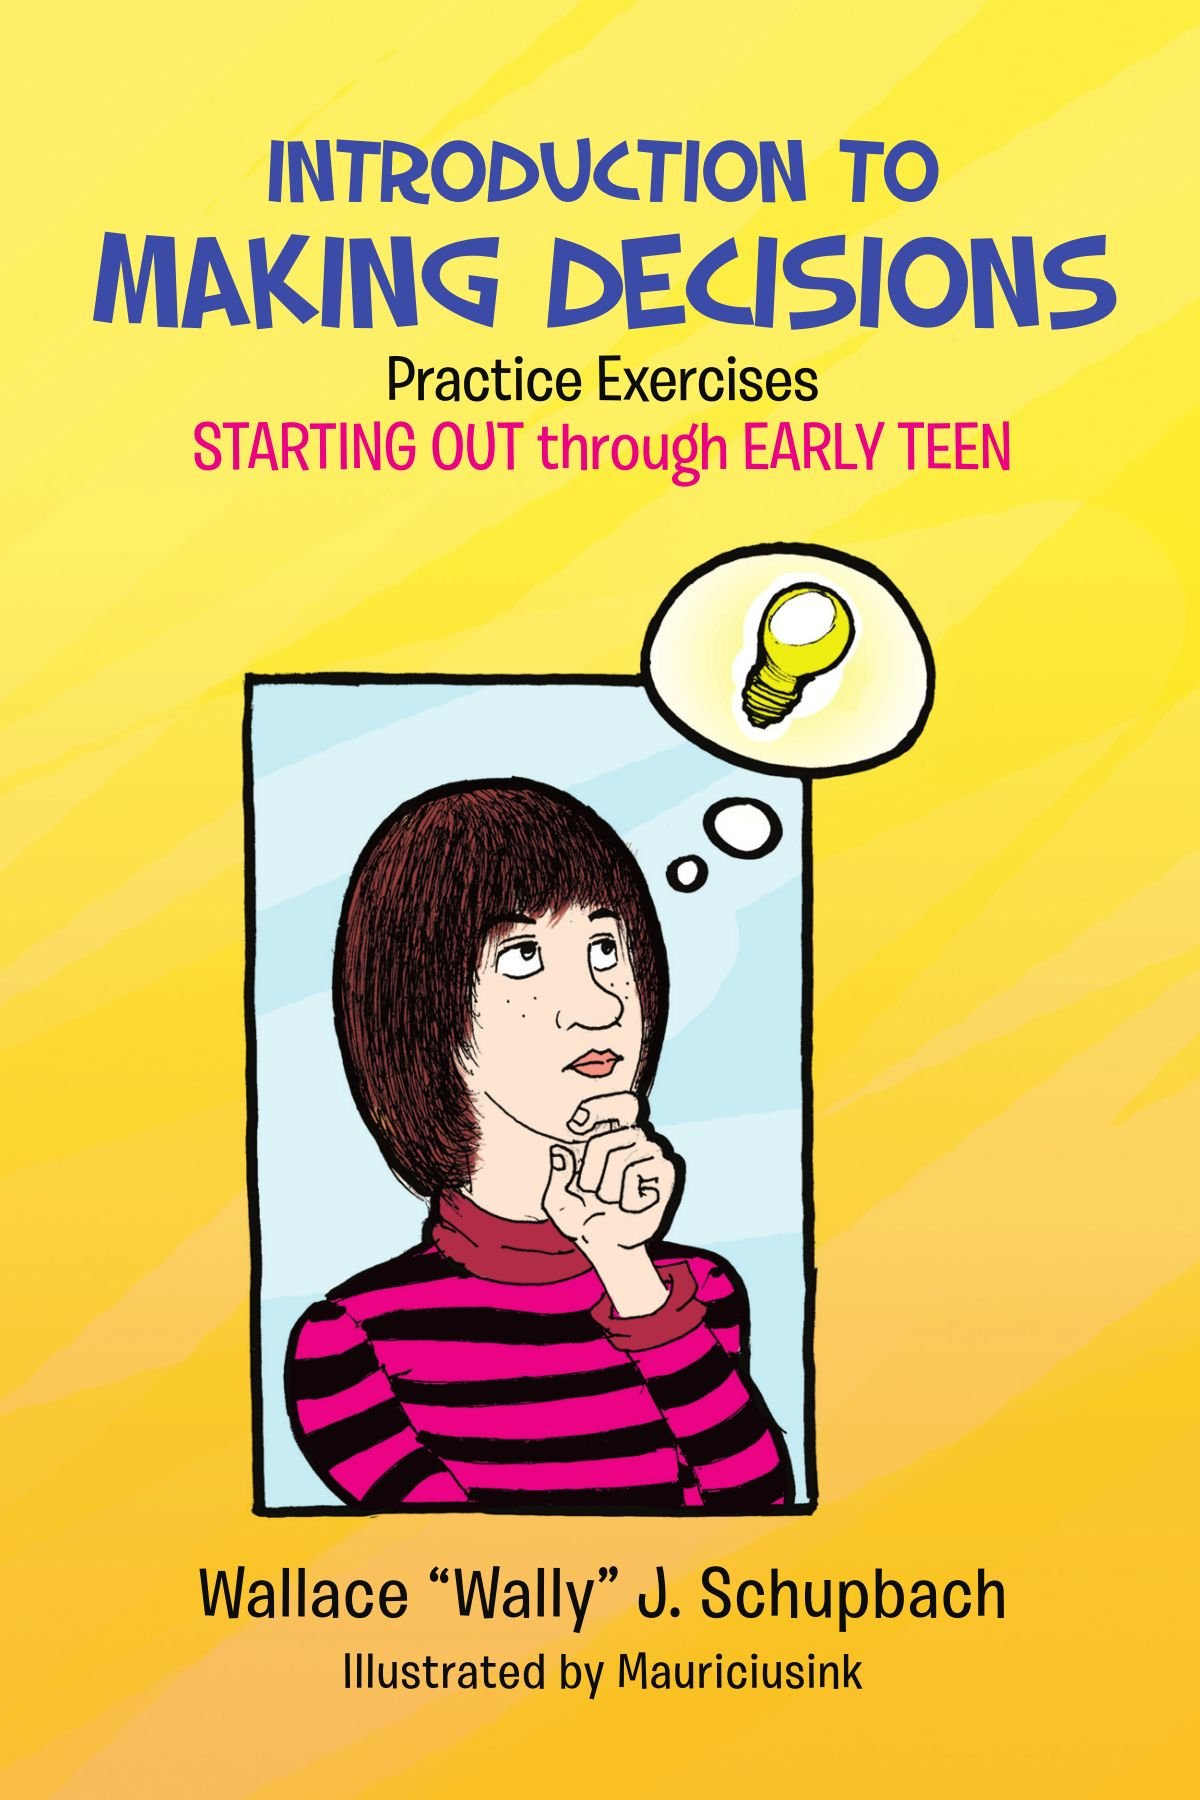 Introduction to Making Decisions